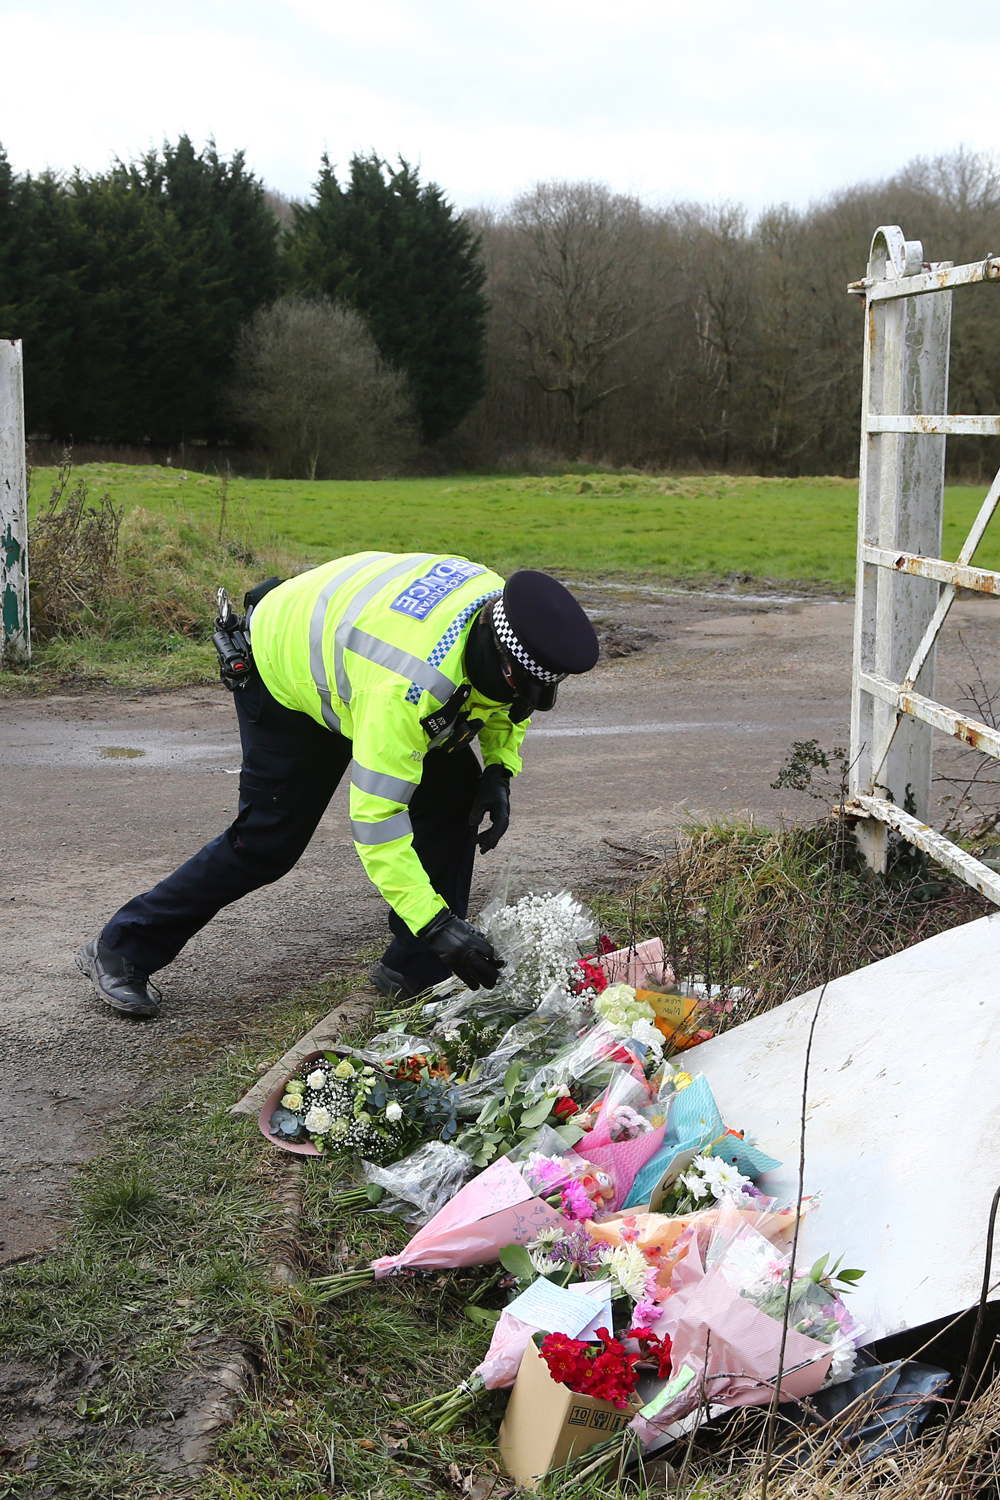 A police officer places flowers left by members of the public from the cordon to the site as Metropolitan Police continue their search near Great Chart, Kent after a body found hidden in woodland in Kent was identified as that of 33-year-old Sarah